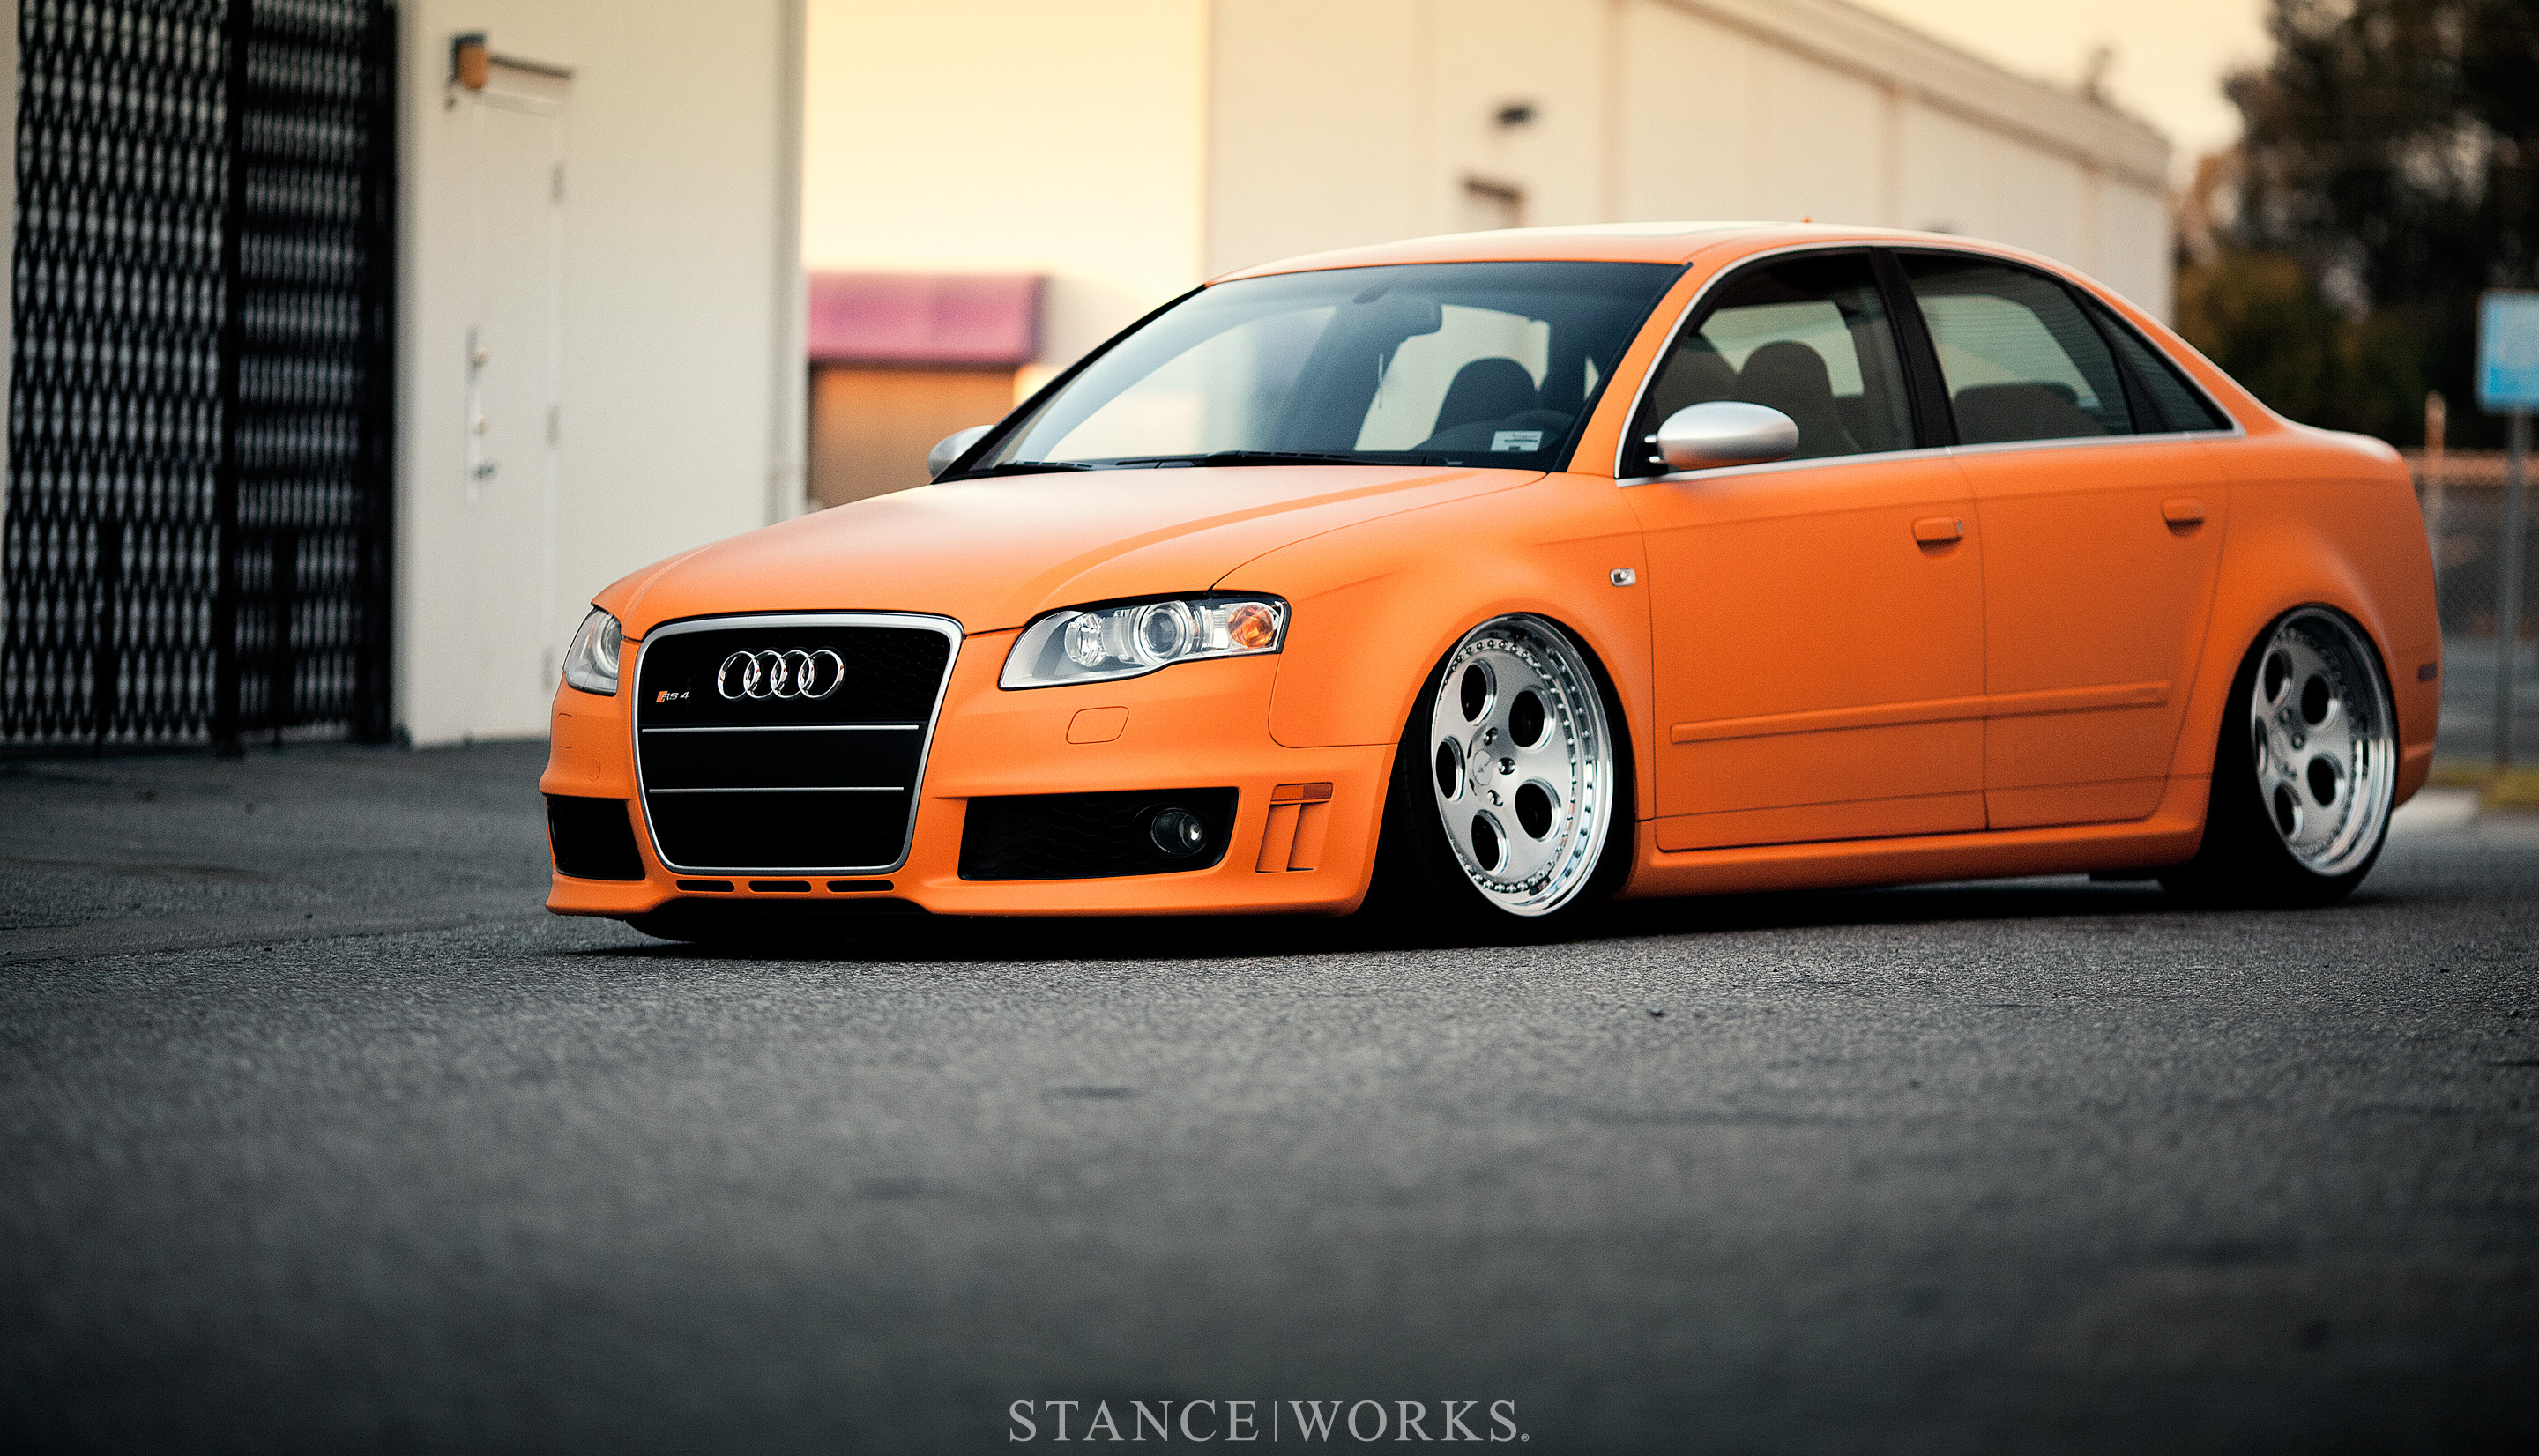 Stance Wallpaper (75+ images)